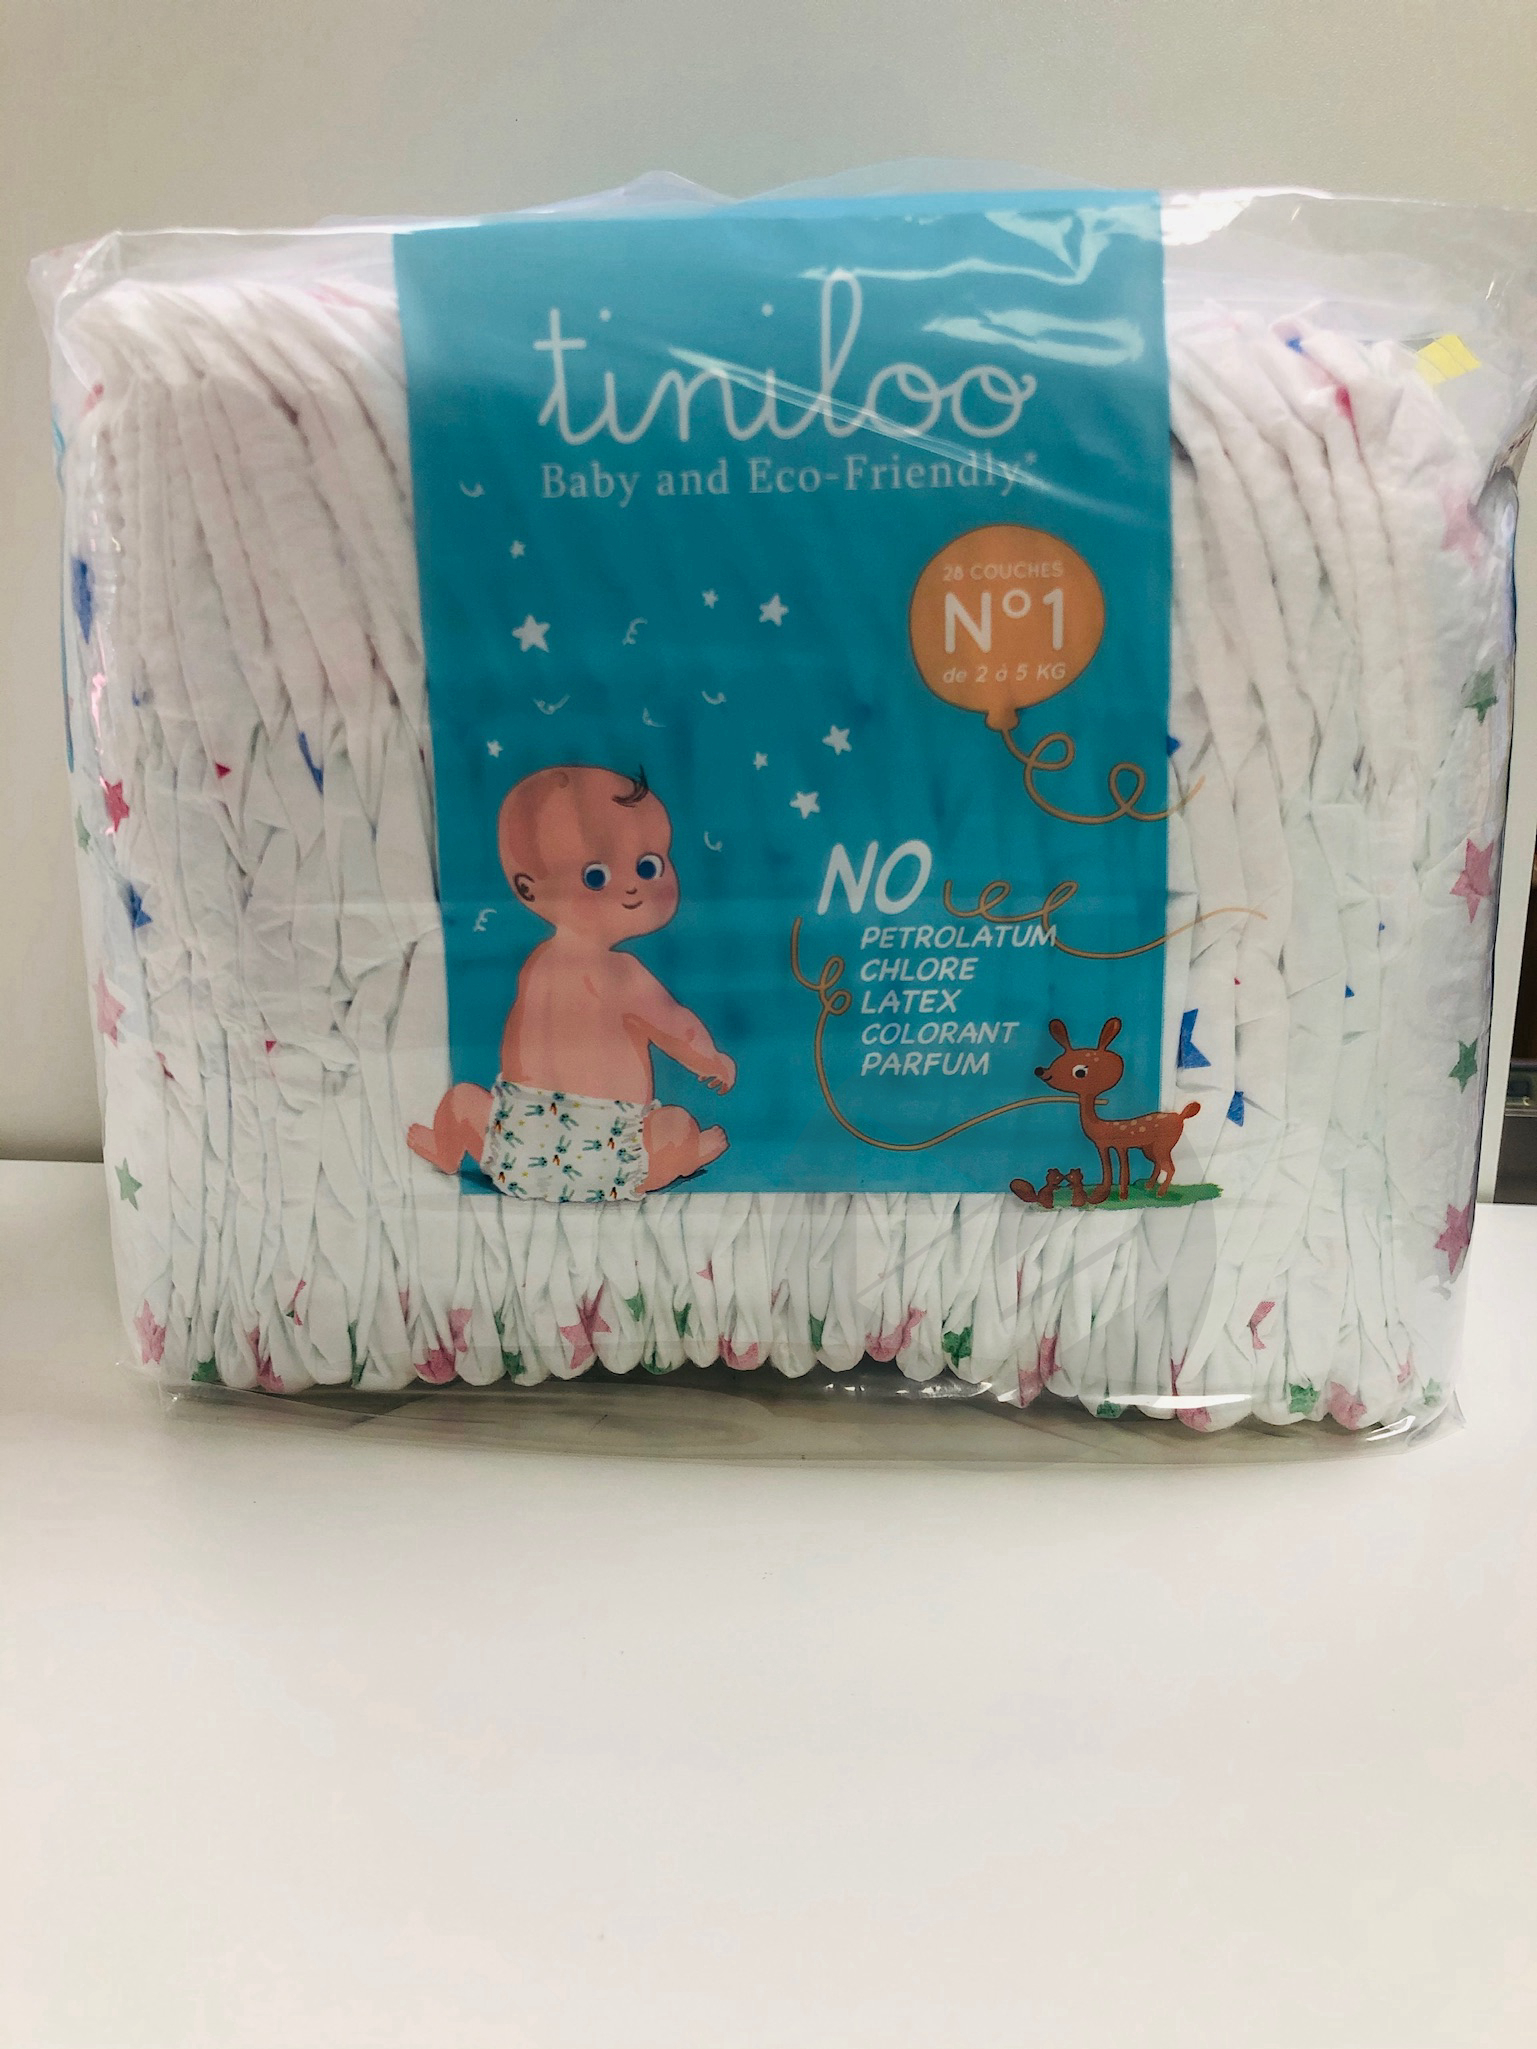 Tiniloo couche taille 1 (2 à 5 kg)